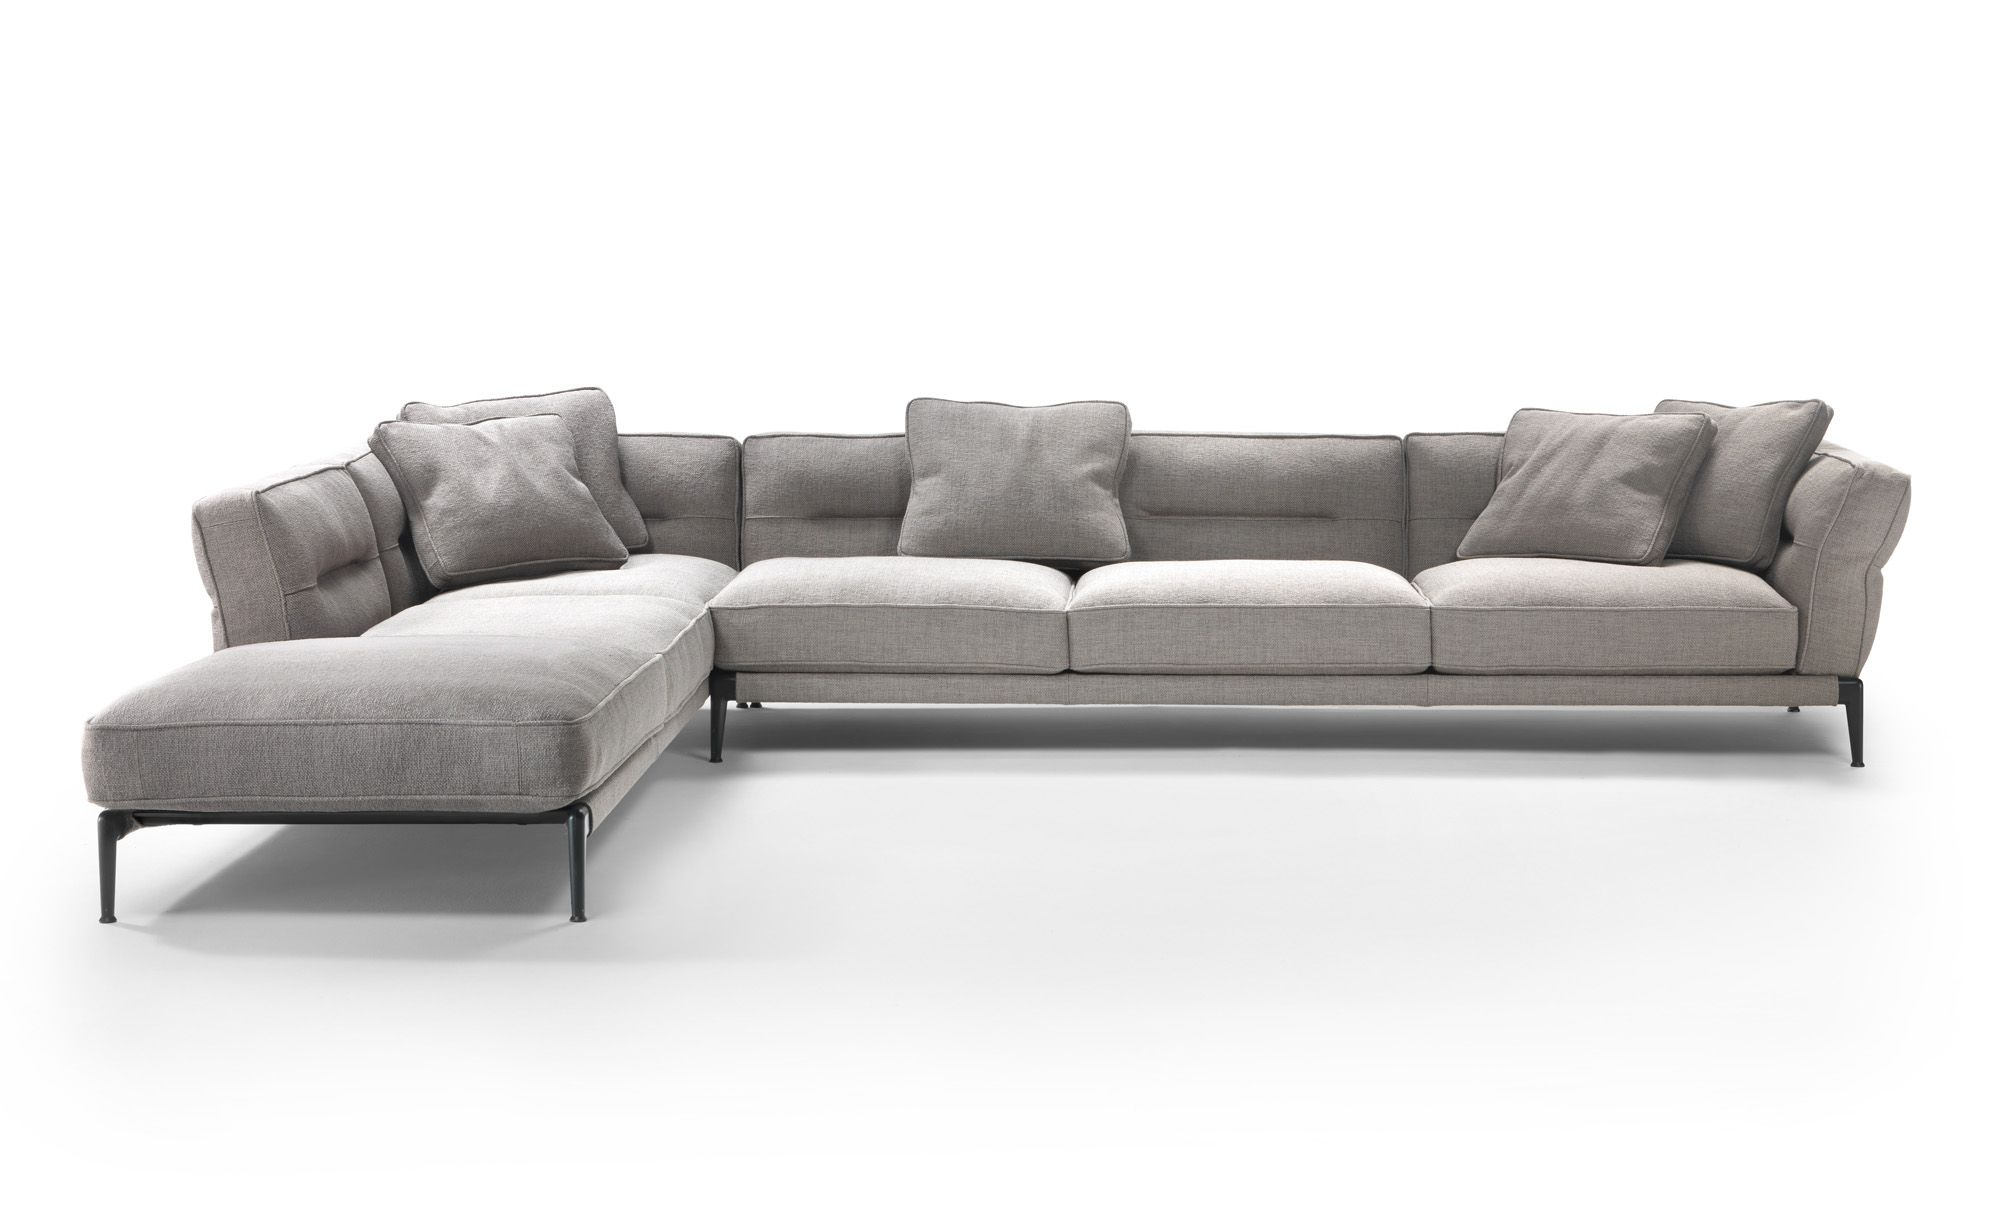 A Linear Component Sofa With A Clean Contemporary Look The Light